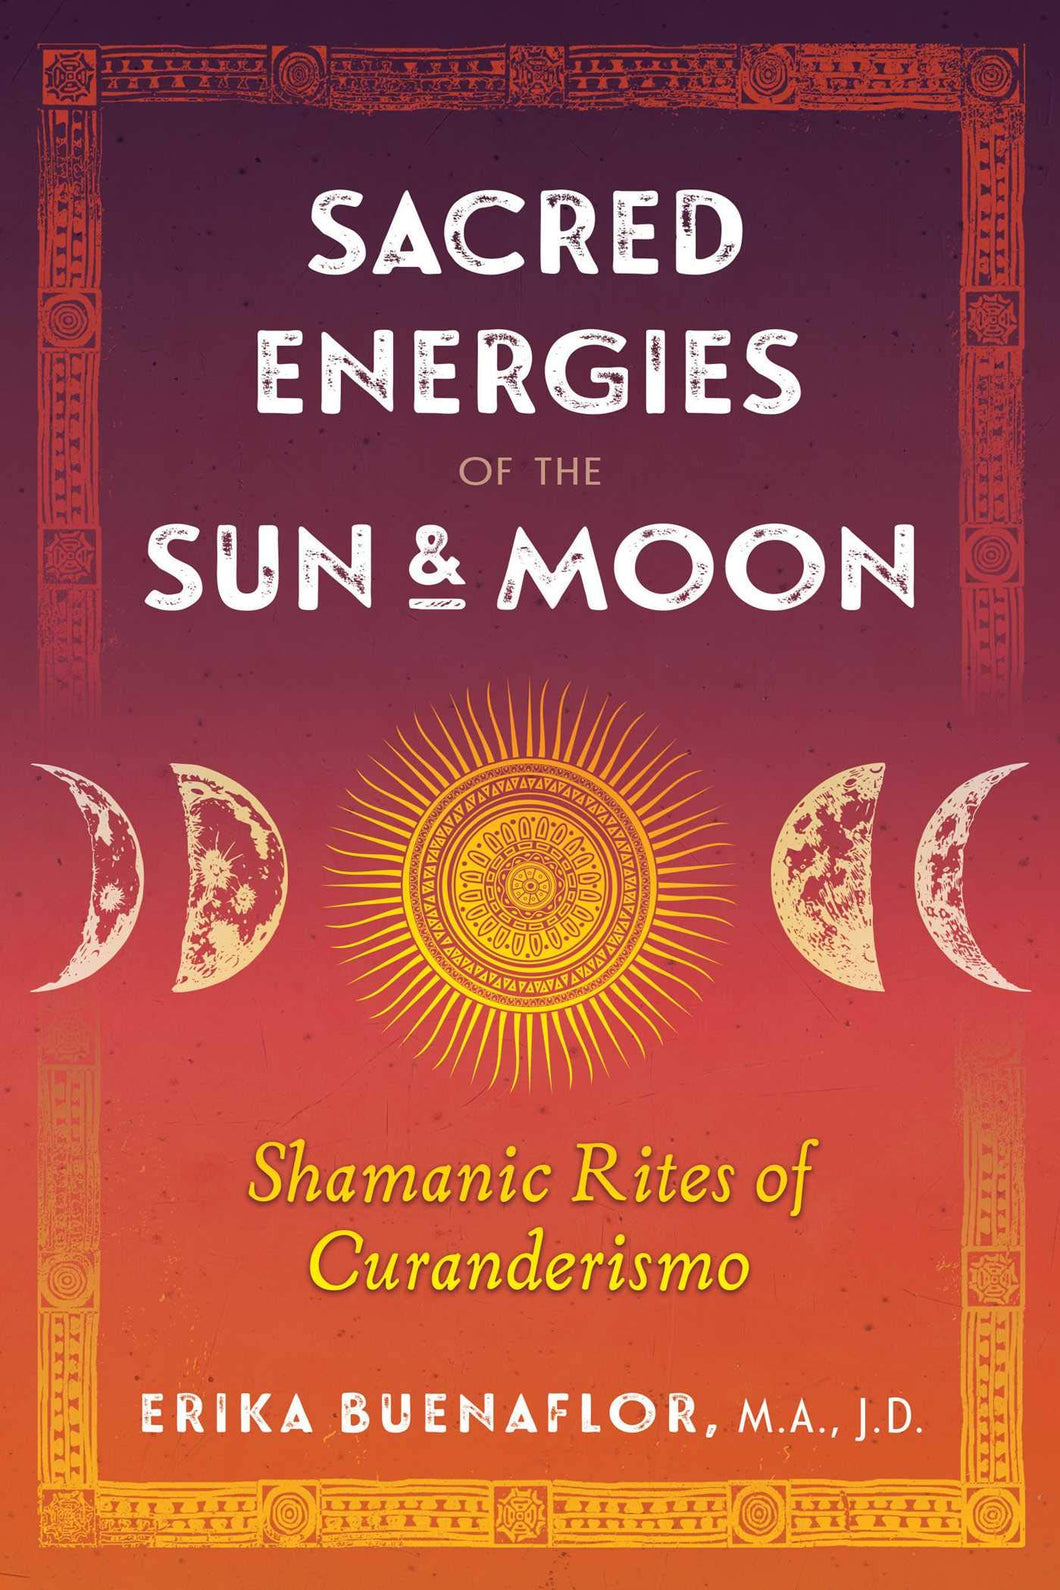 Sacred Energies of the Sun and Moon: Shamanic Rites of Curanderismo by Erika Buenaflor